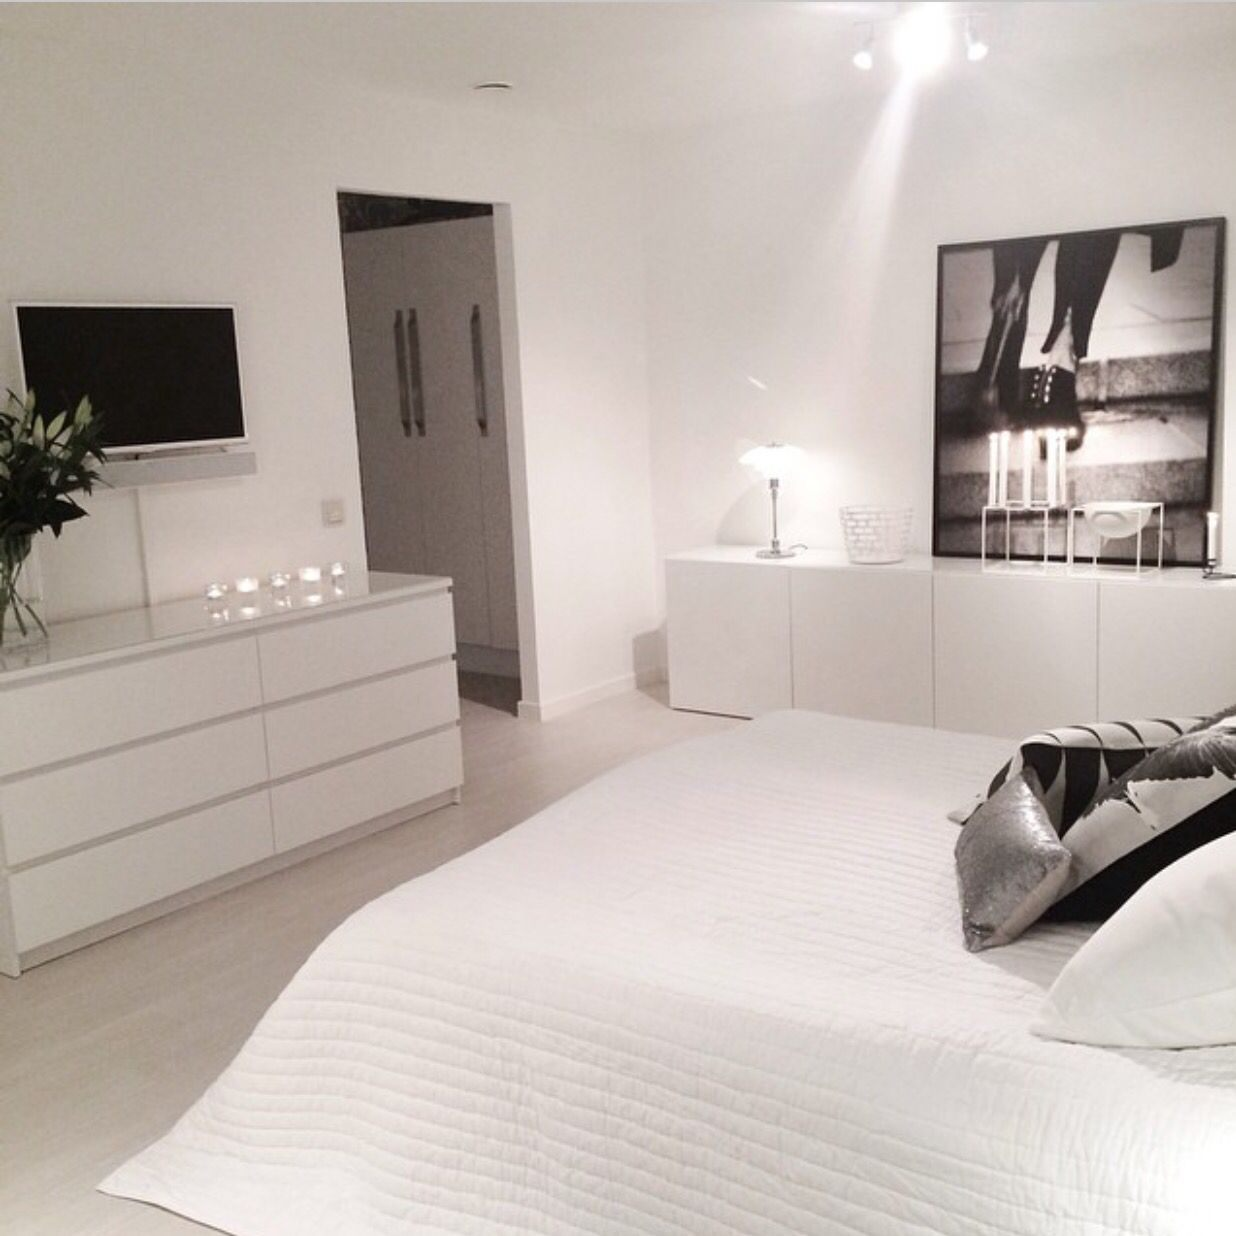 Lit Malm Ikea 90 Frais Scandinavian Design Get To Know This All White Design Project